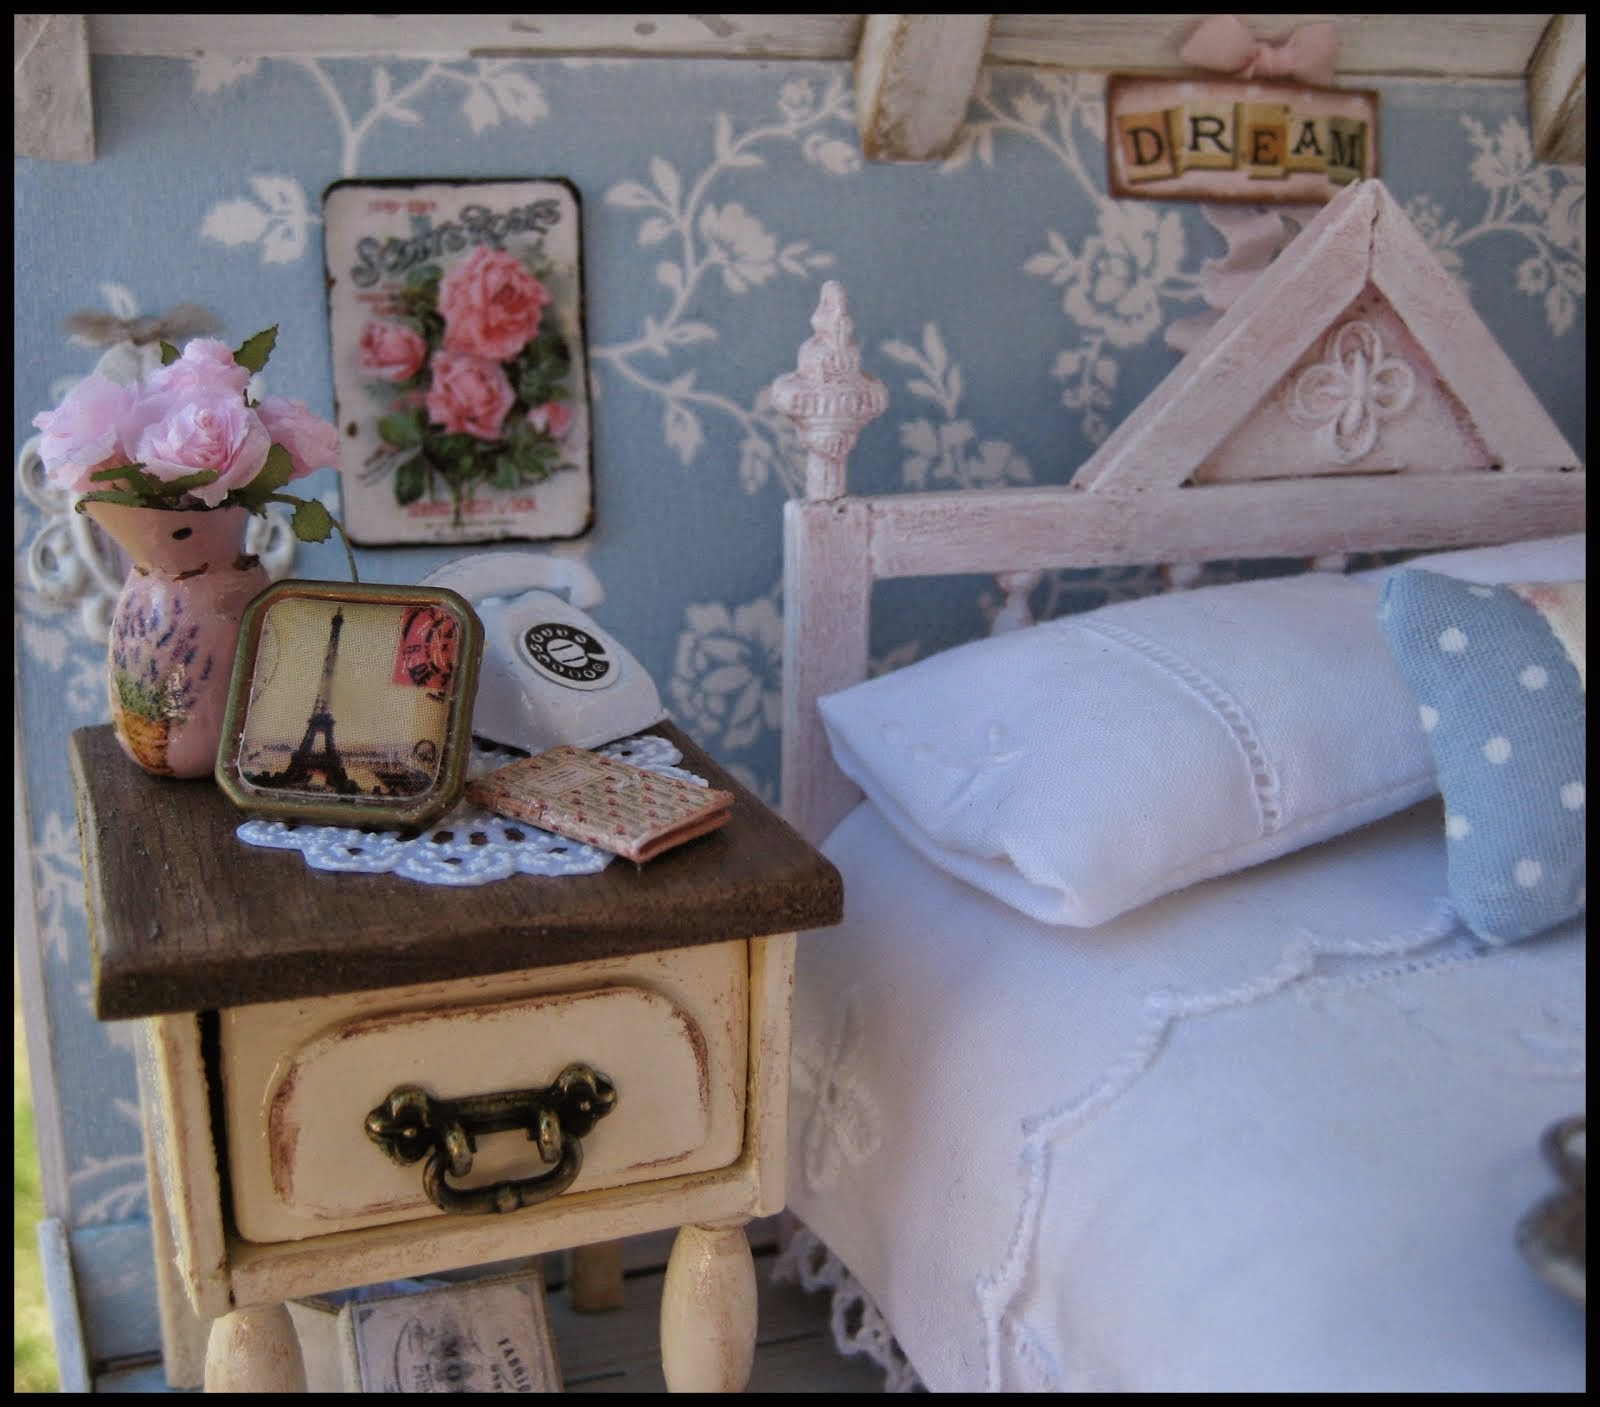 The Shabby Bedroom